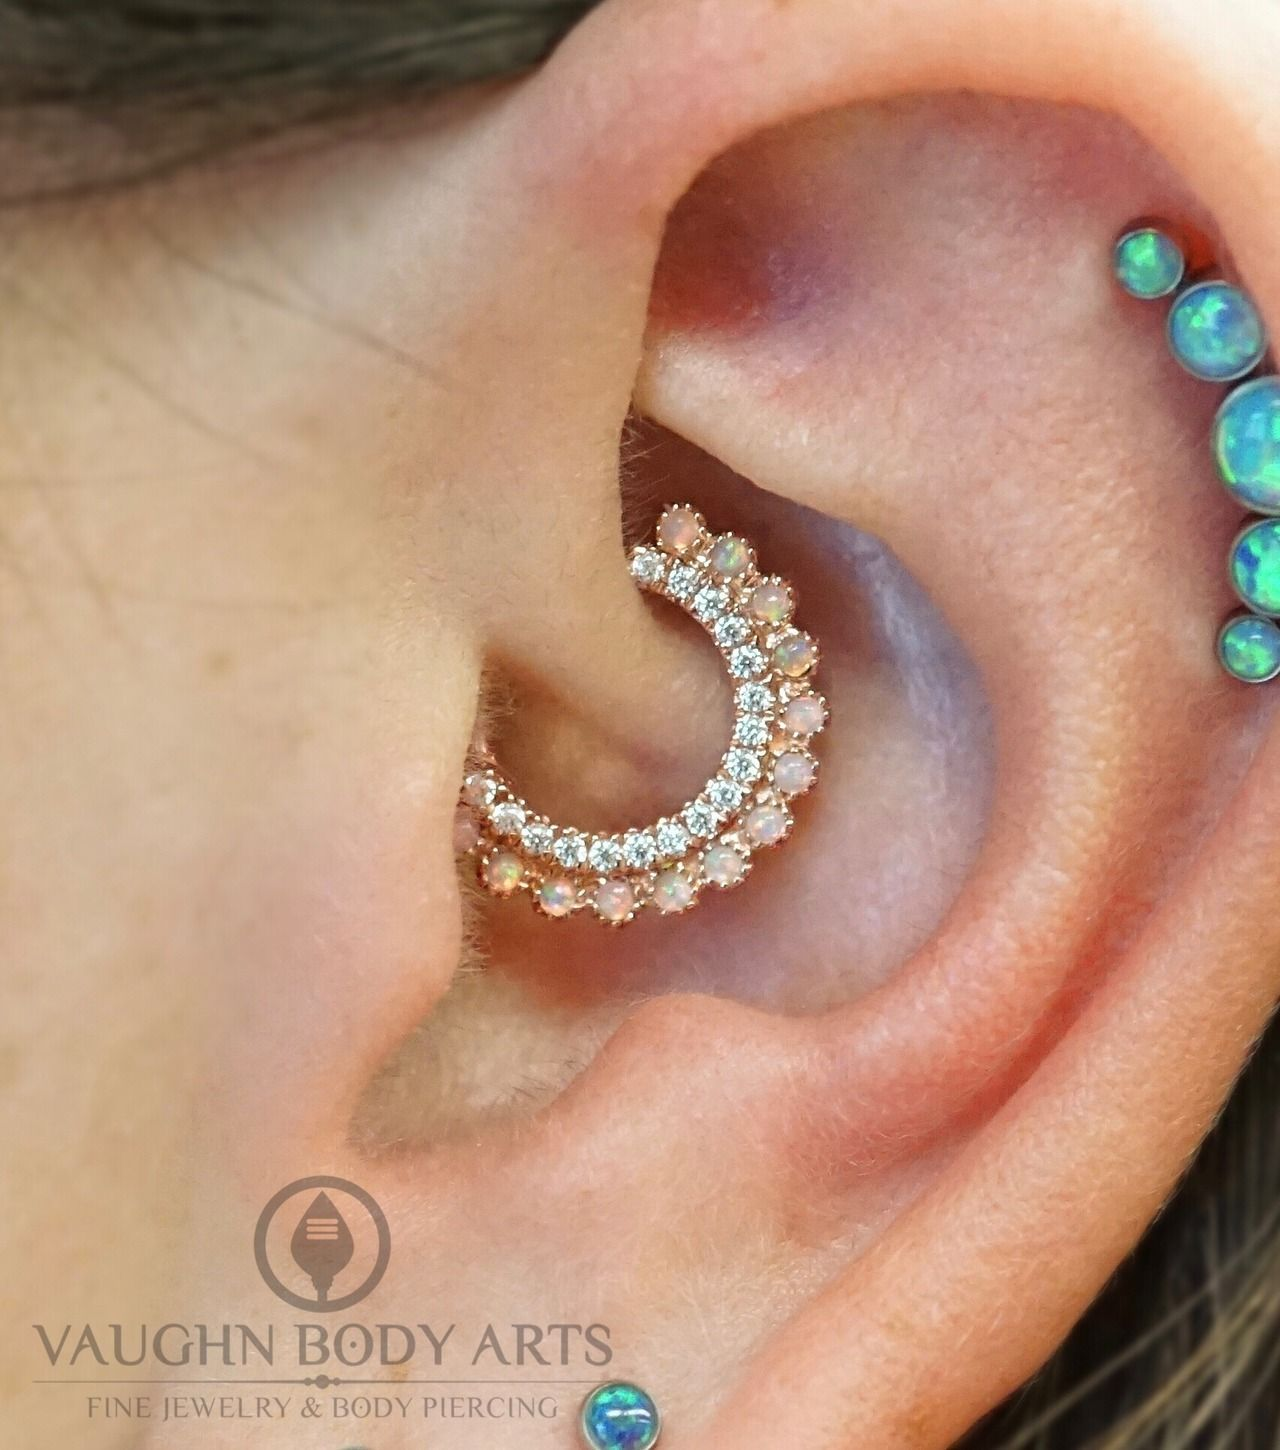 Nose piercing chart  vaughnbodyarts ucWell hello there fancy ear Our awesome client